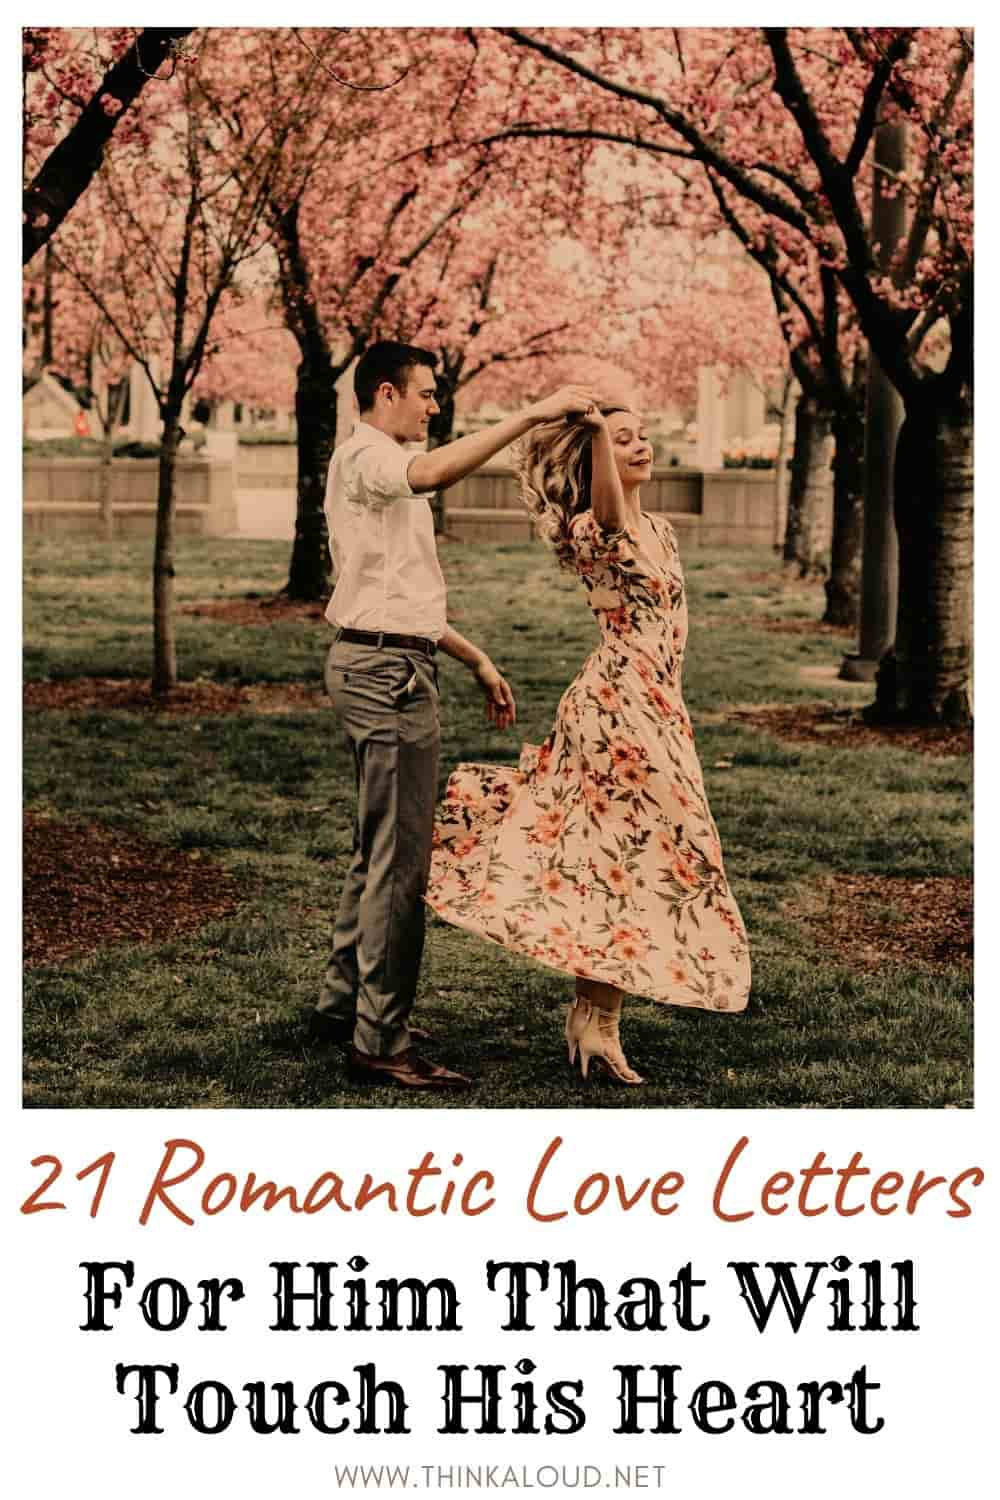 21 Romantic Love Letters For Him That Will Touch His Heart